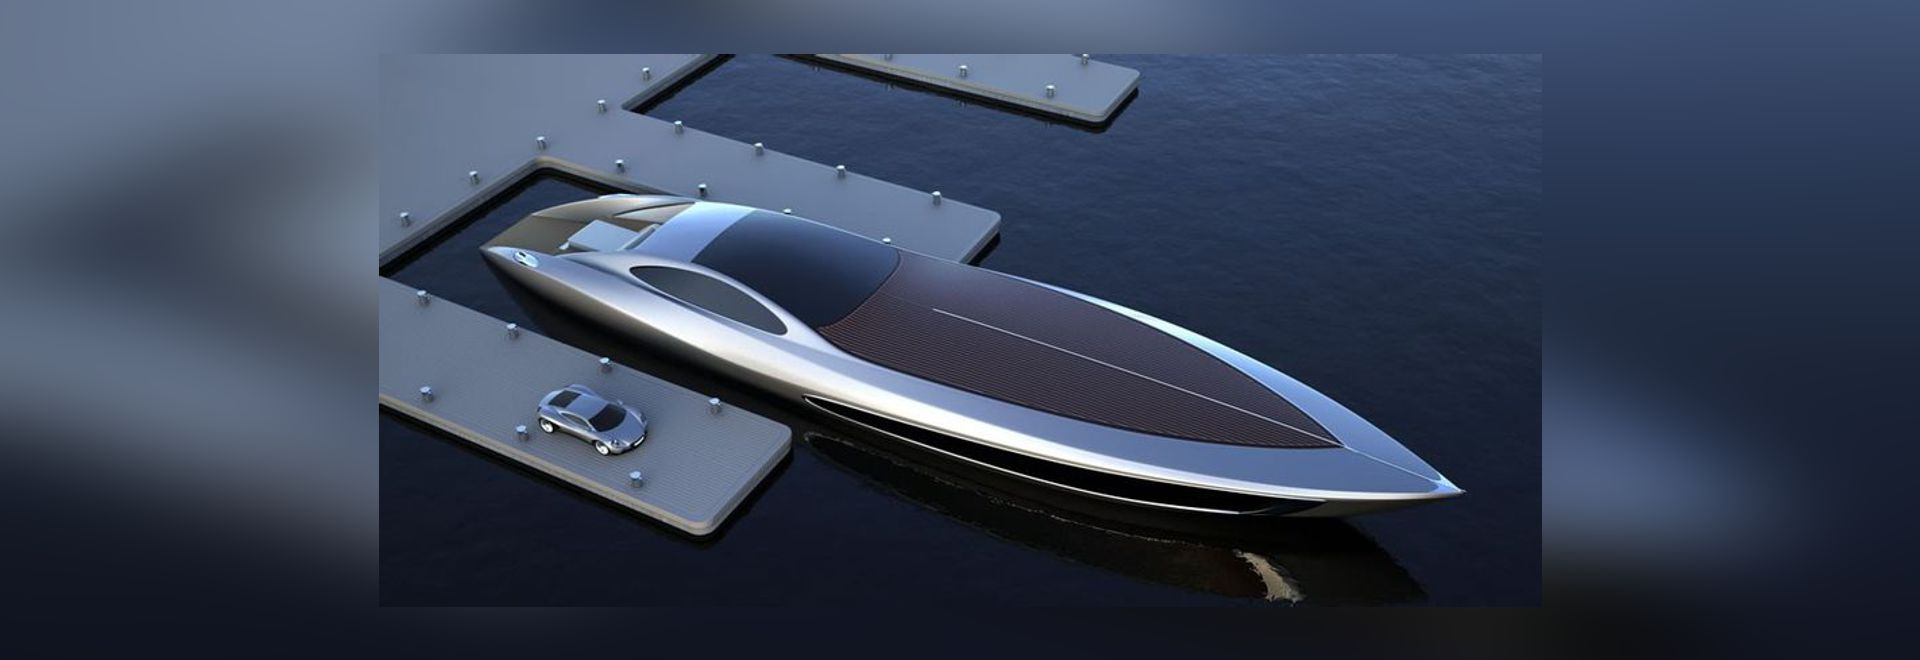 Million Strand Craft Luxury Yacht Comes With Its Own